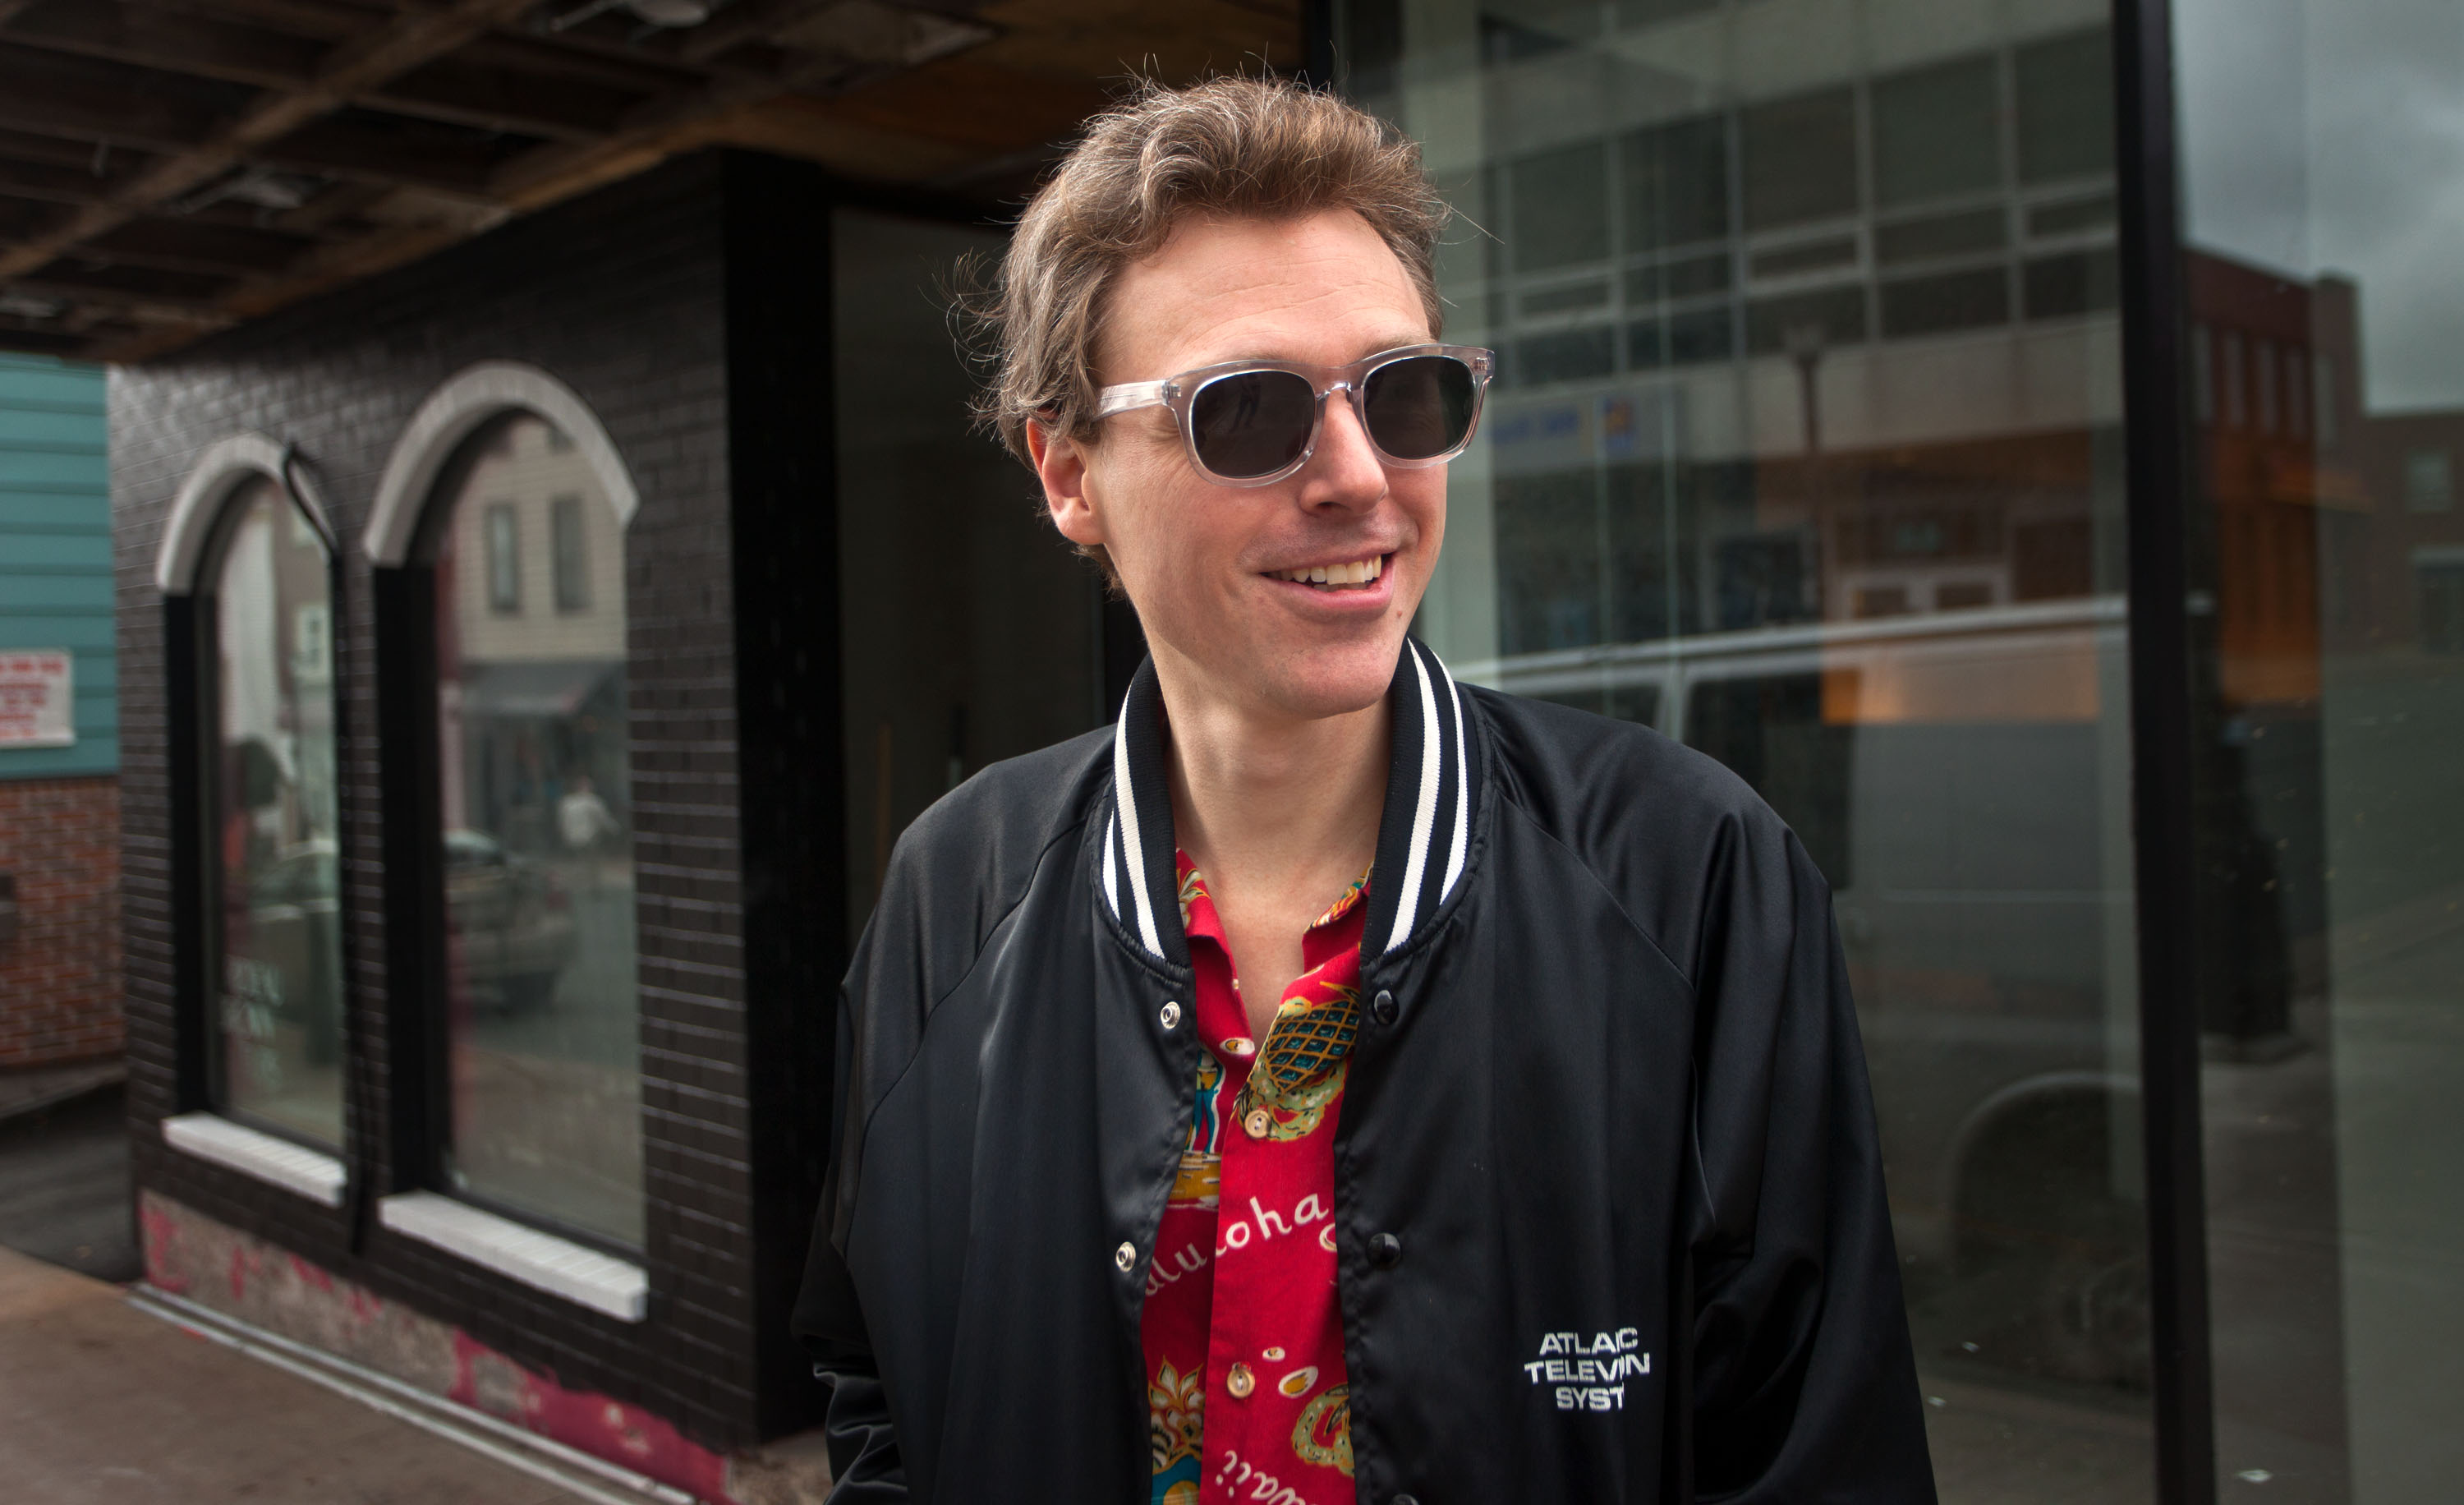 Joel Plaskett put on a great show in September at Meaford Hall in Grey County.